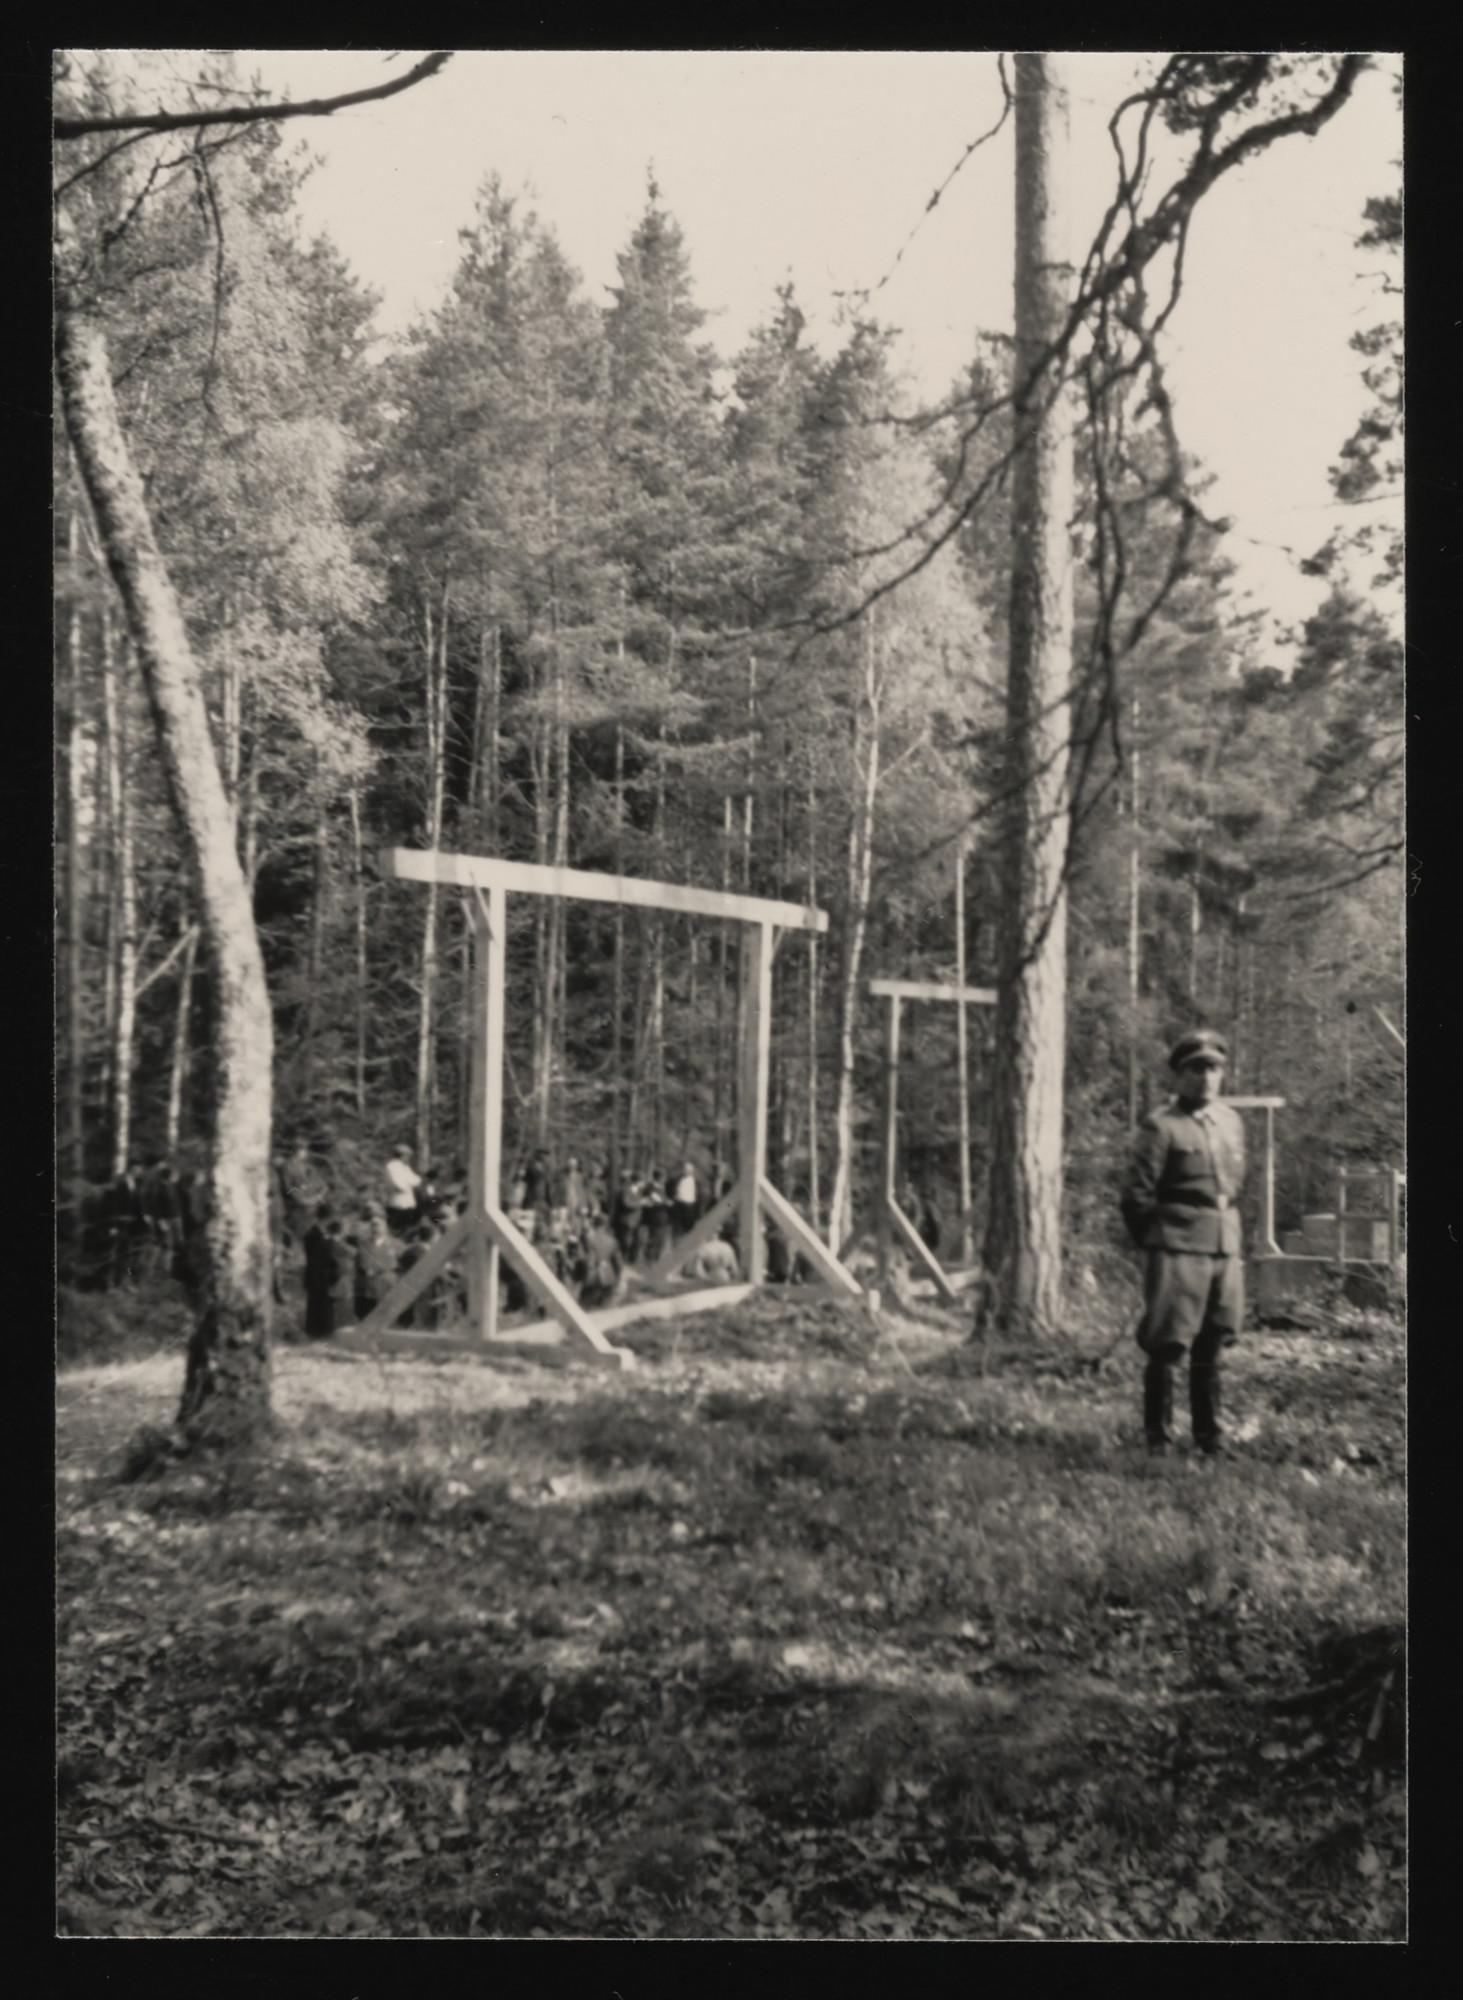 An SS officer standing in front of a newly constructed gallows in the forest near Buchenwald concentration camp.